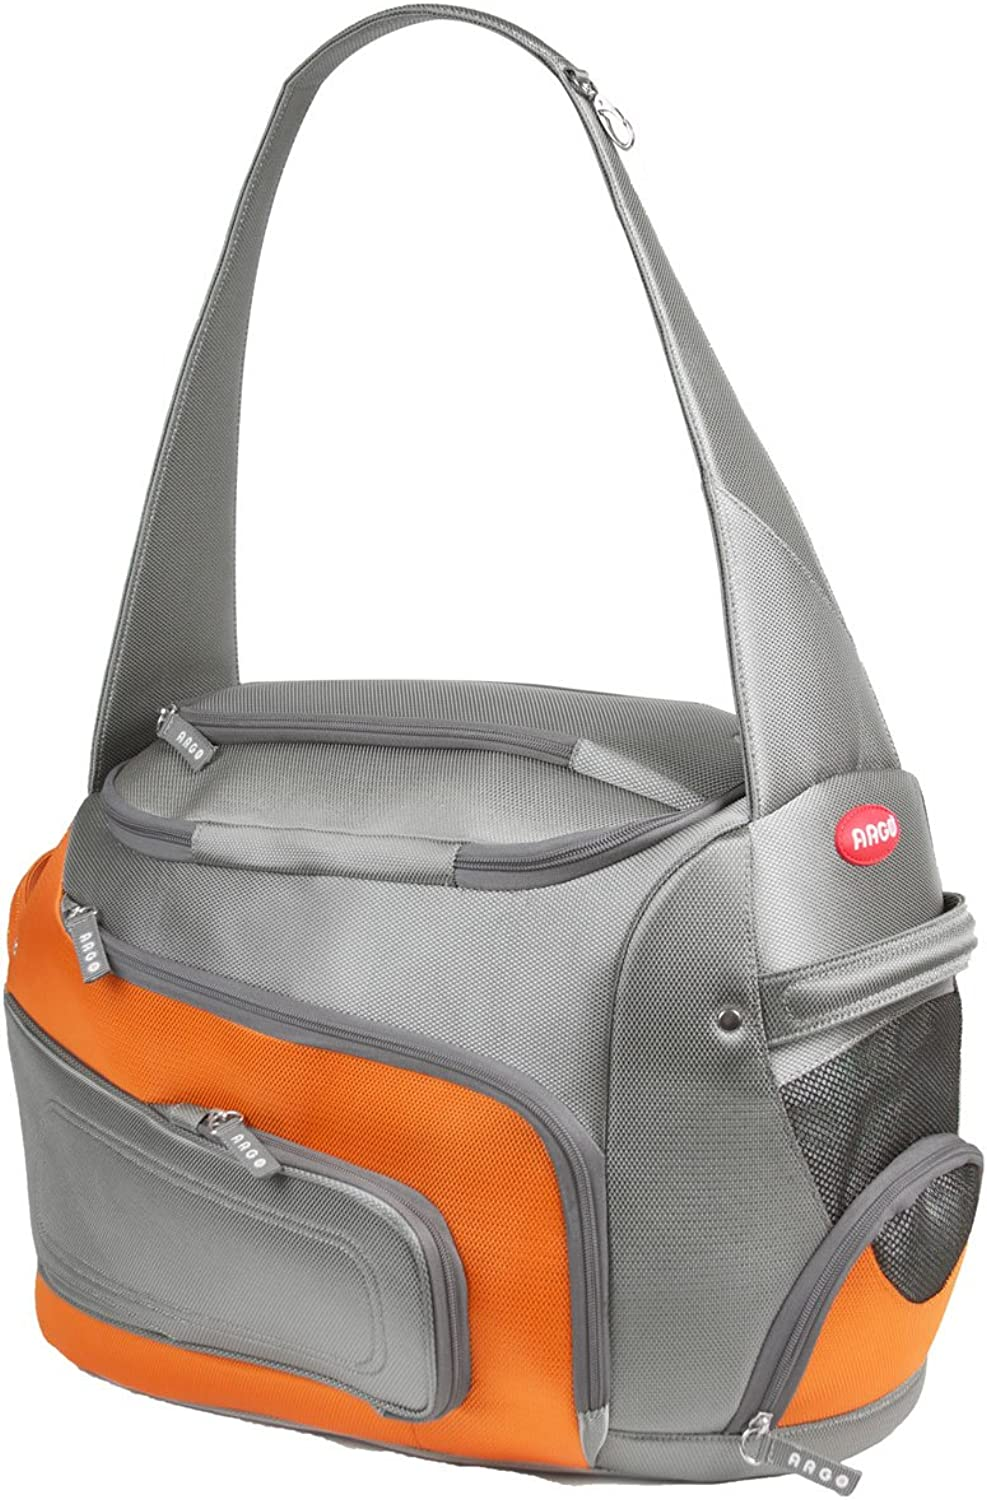 Argo By Teafco DuffO Airline Approved (20  Large) Pet Carrier  Tango orange